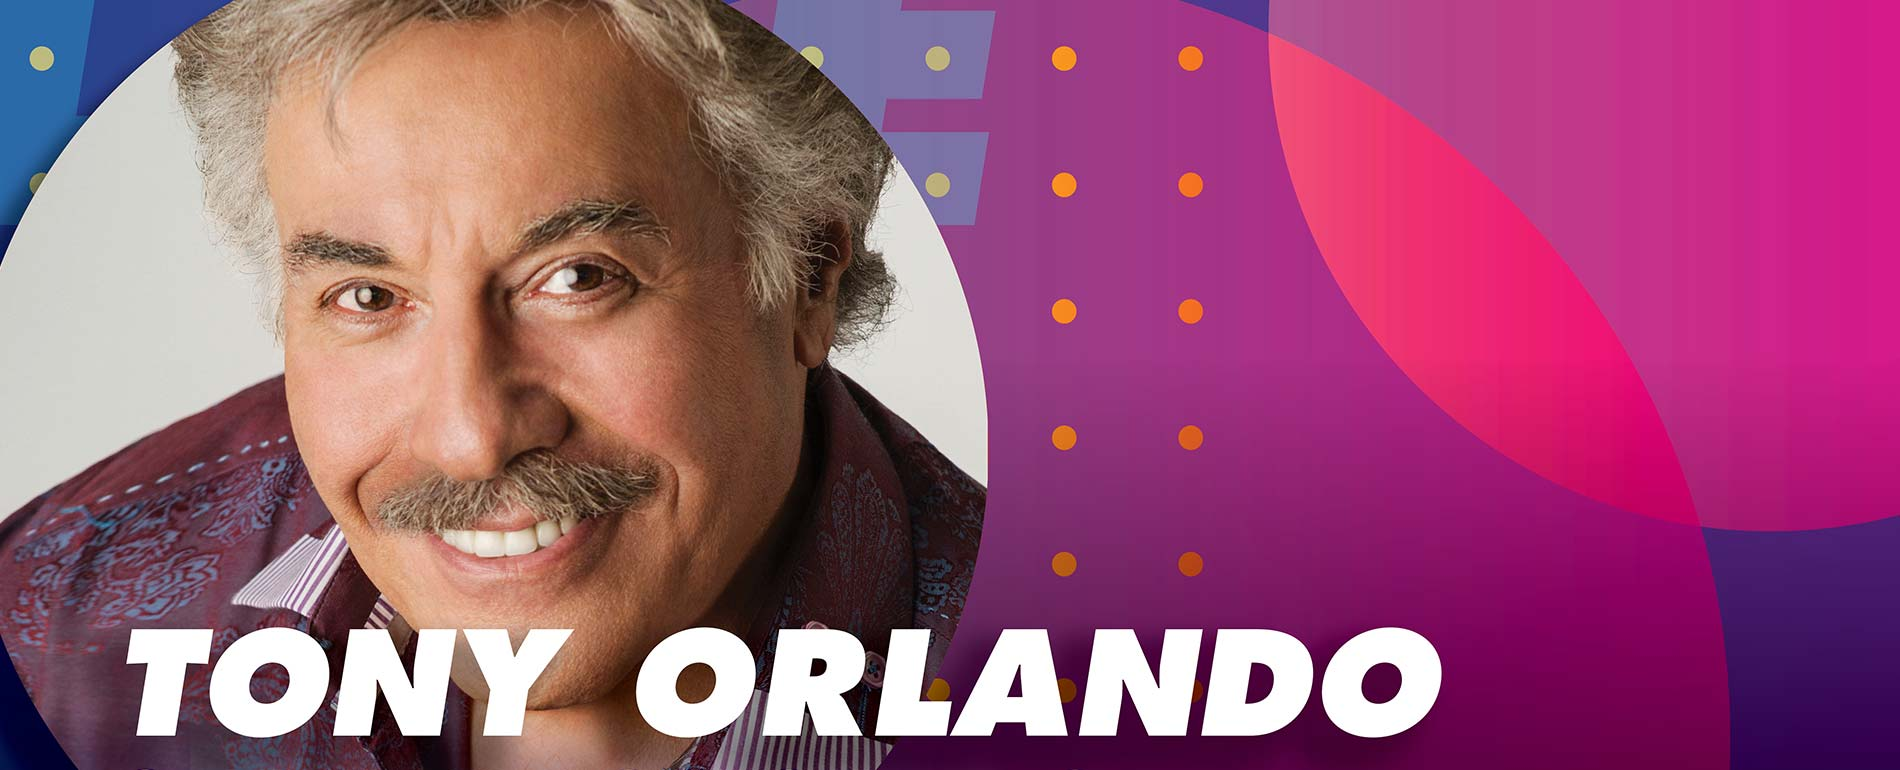 Tony Orlando - Poconos Entertainment